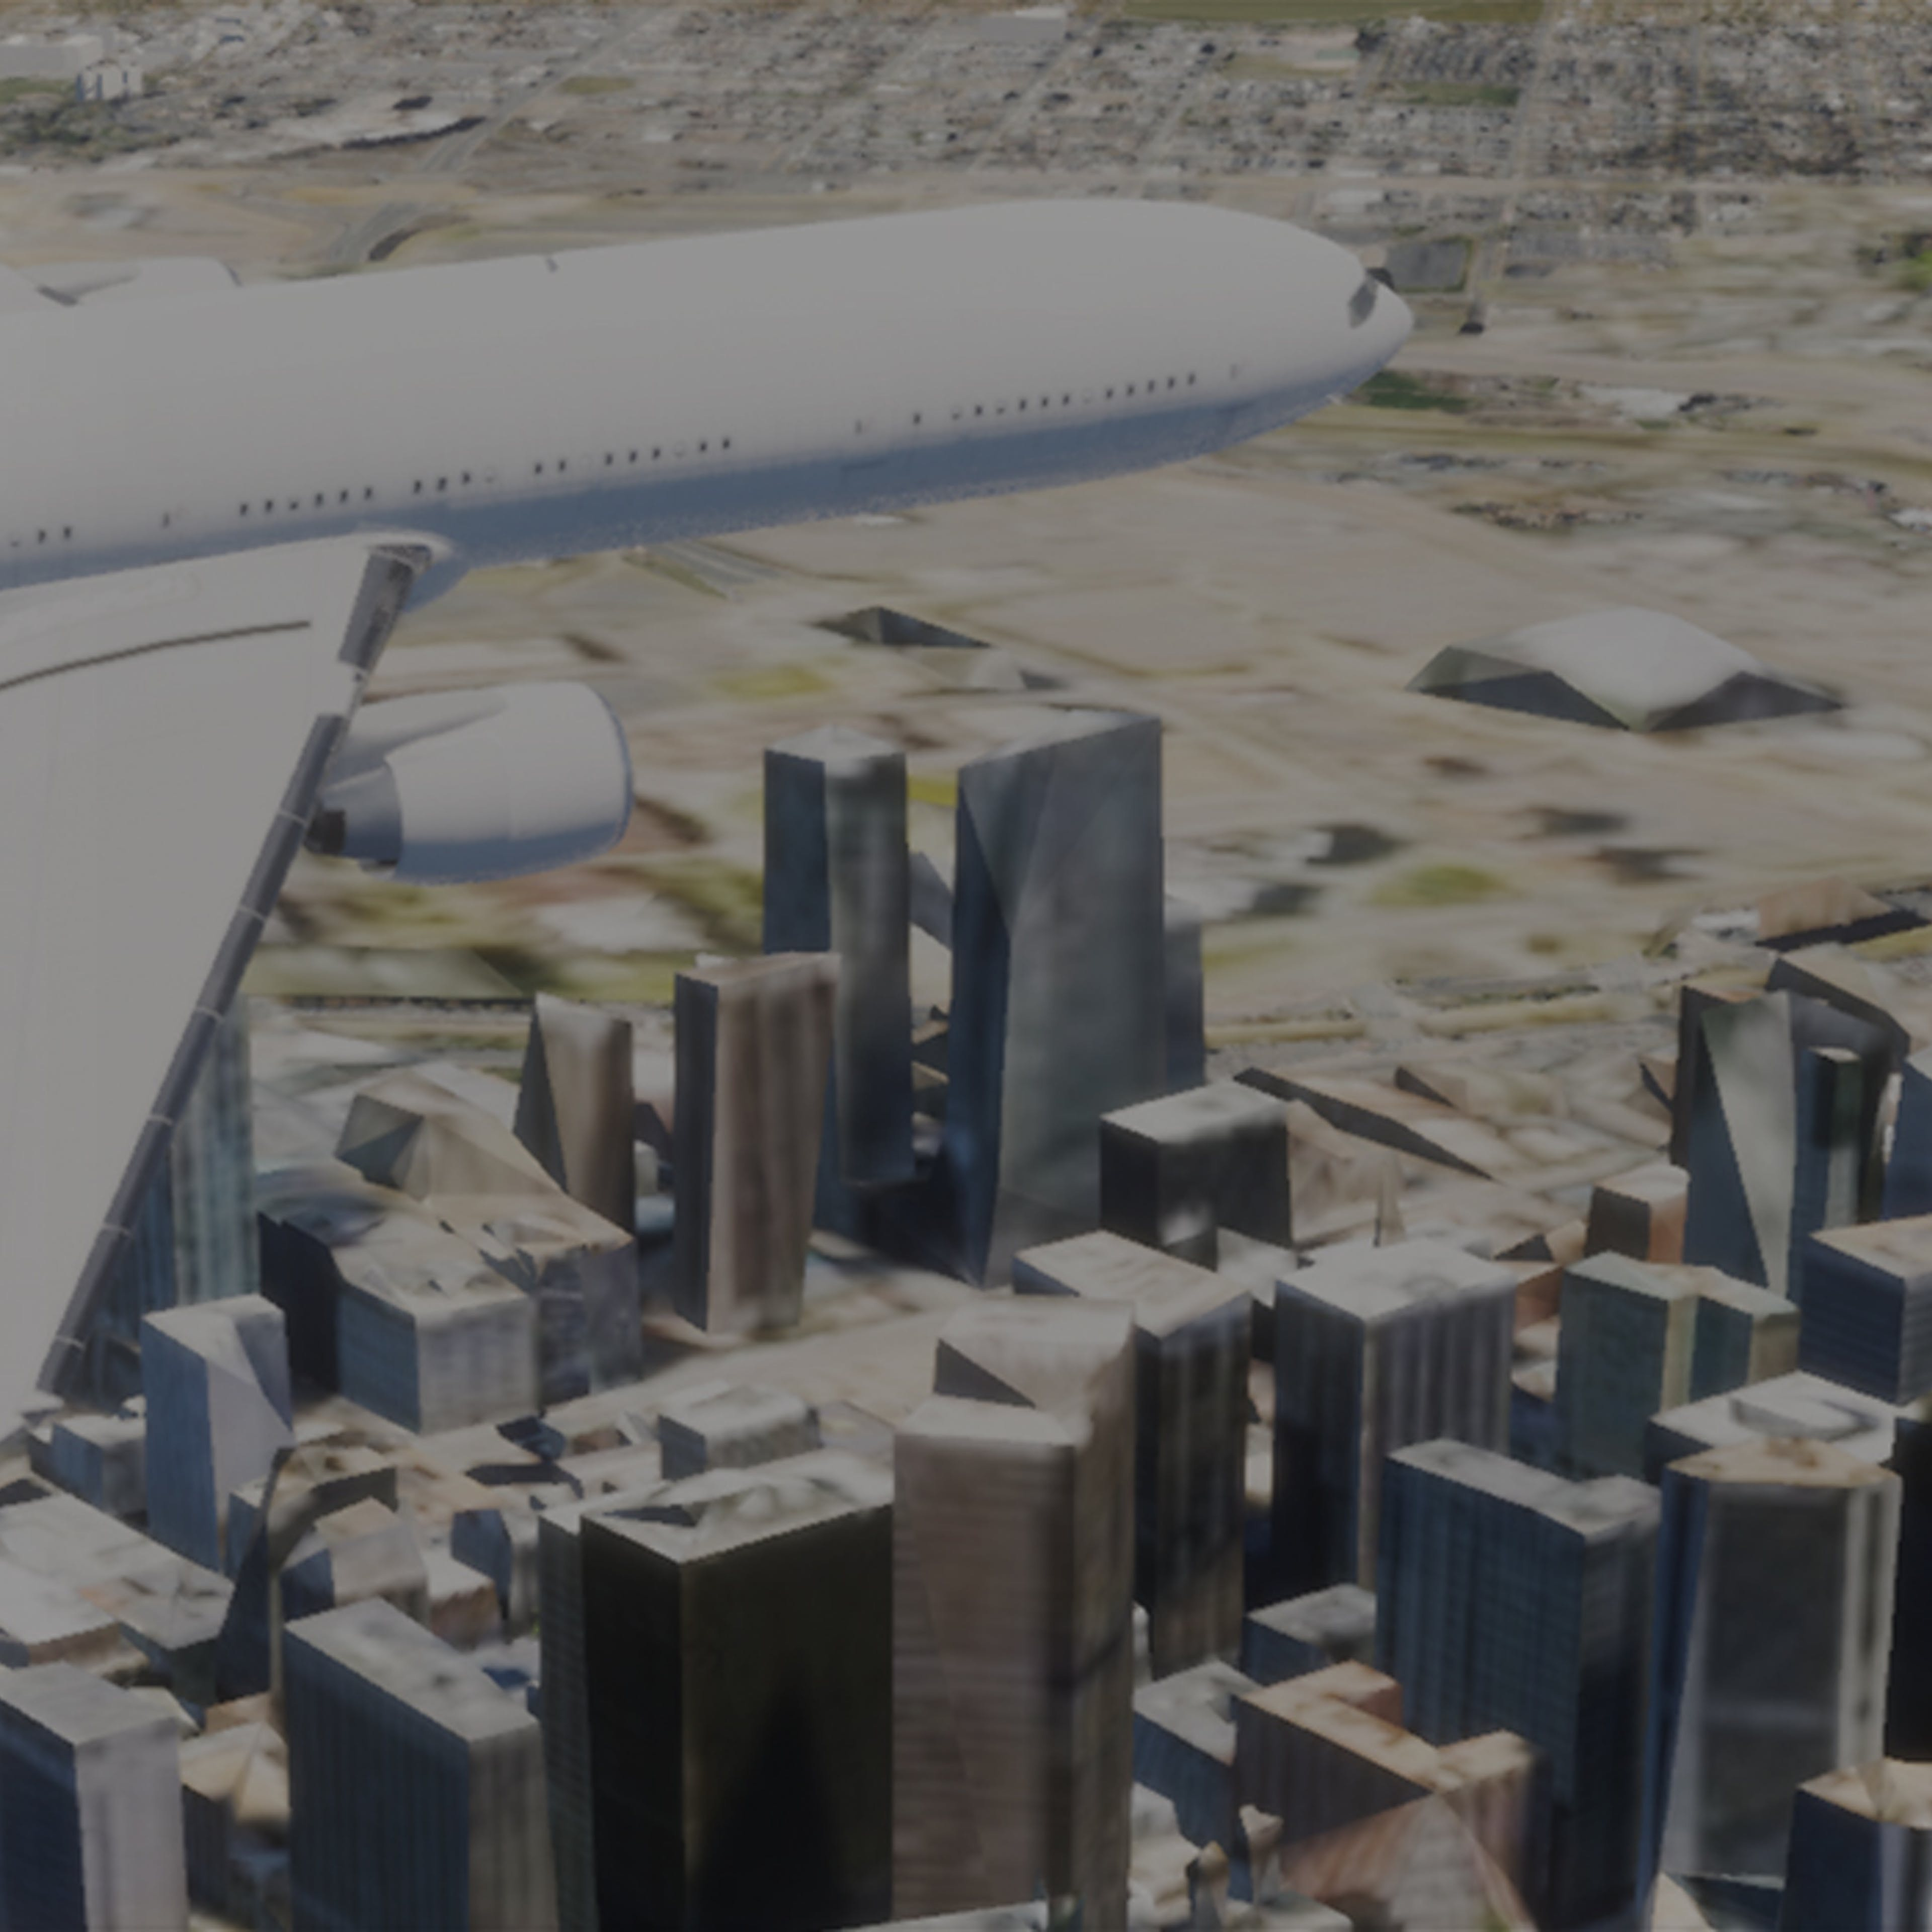 Aerial view of white plane model flying over Denver in Unreal Engine